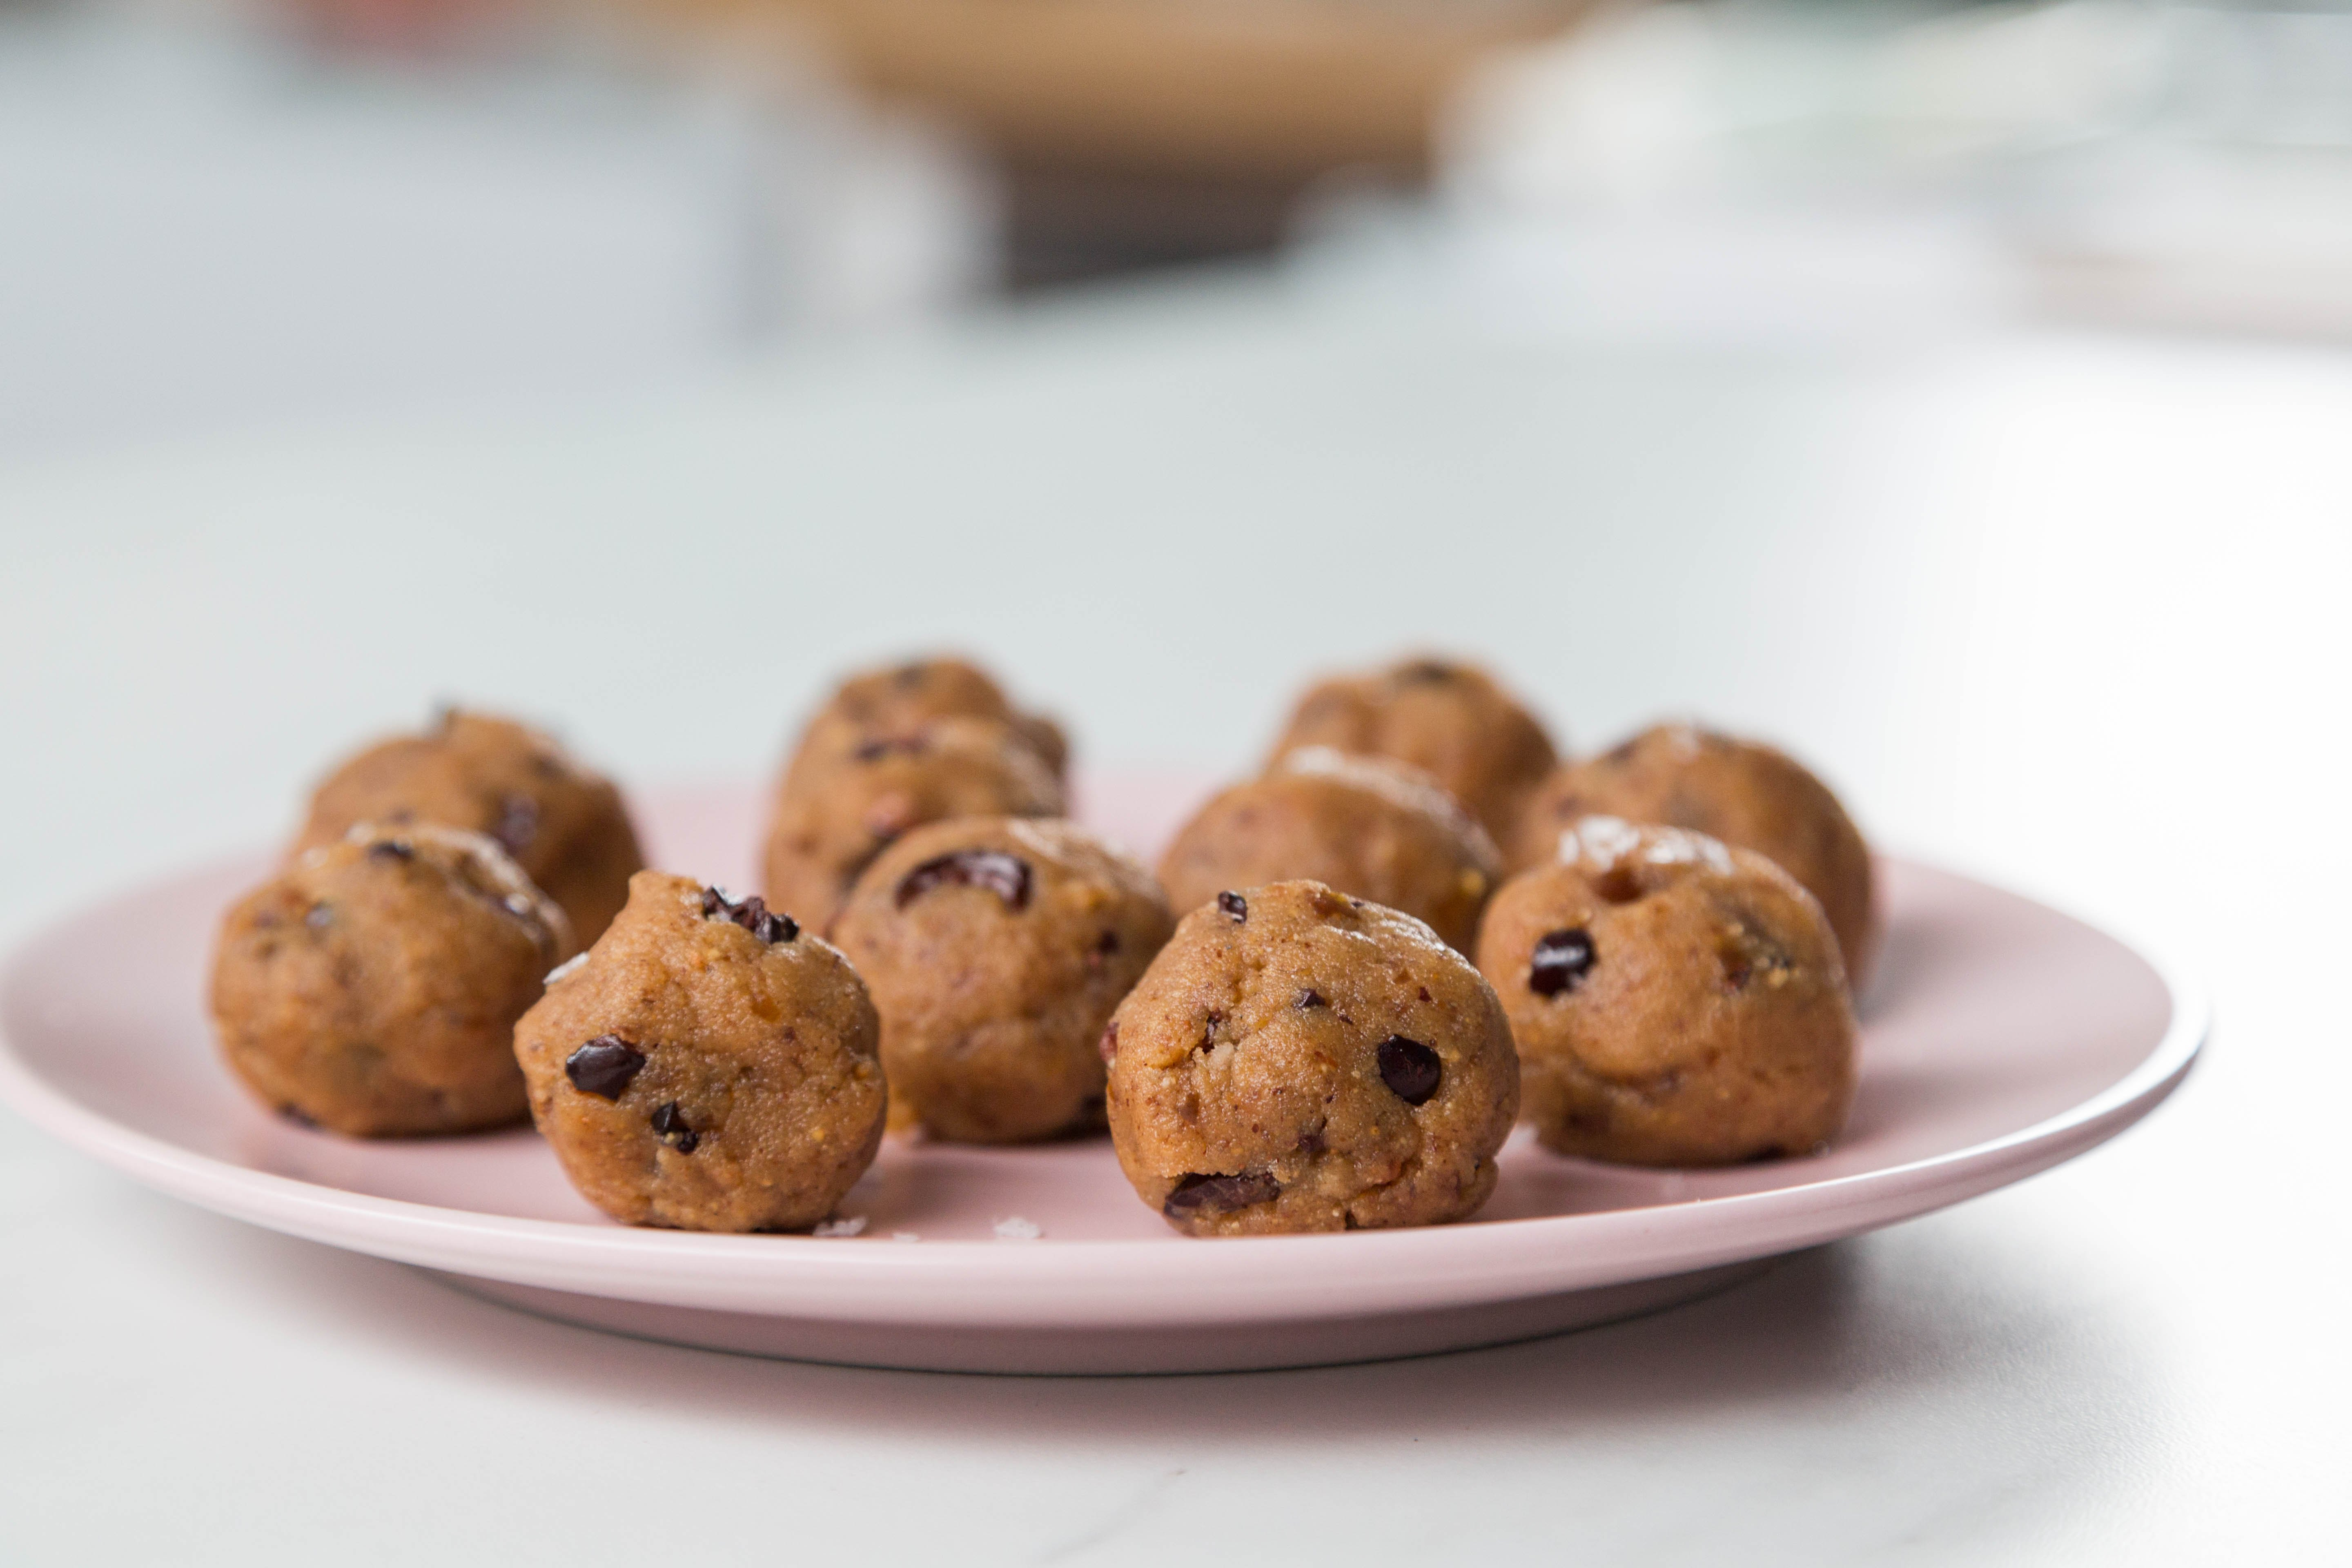 These Chocolate-Chip Cookie Dough 'Fat Bombs' Are Keto-Friendly